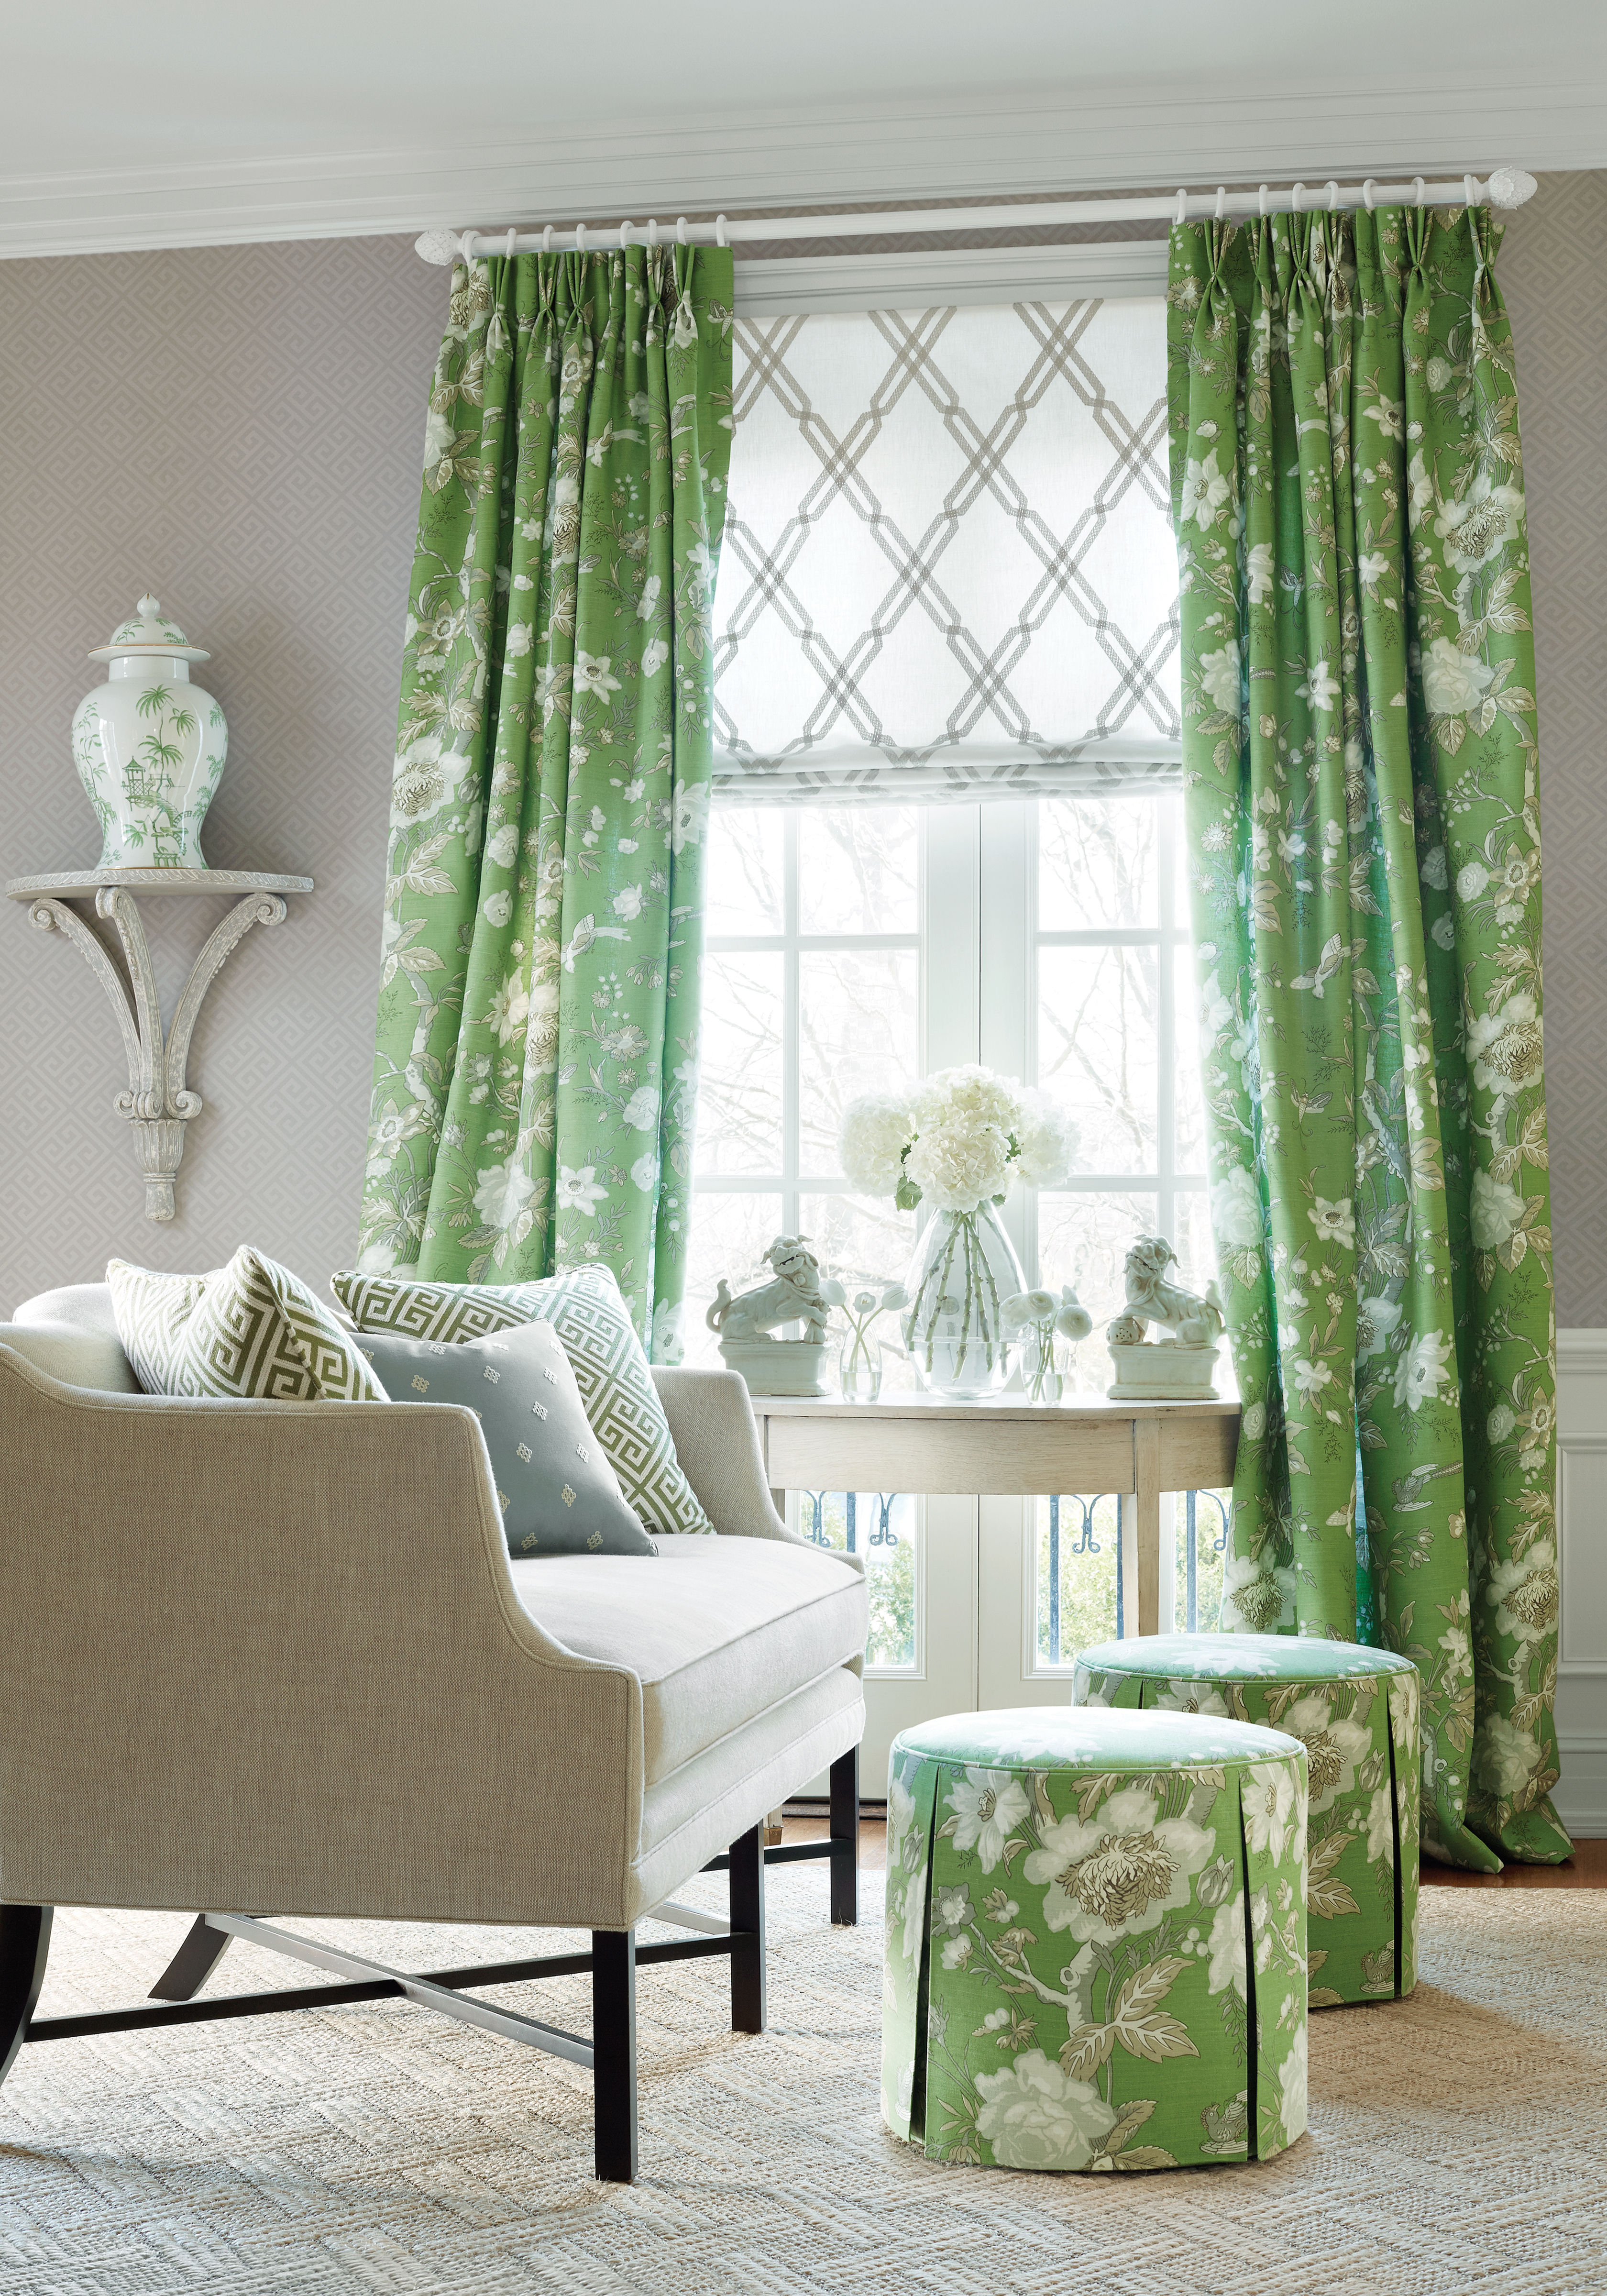 New Wallpaper Introductions Thibaut Enchantment Collection The 3360x4800